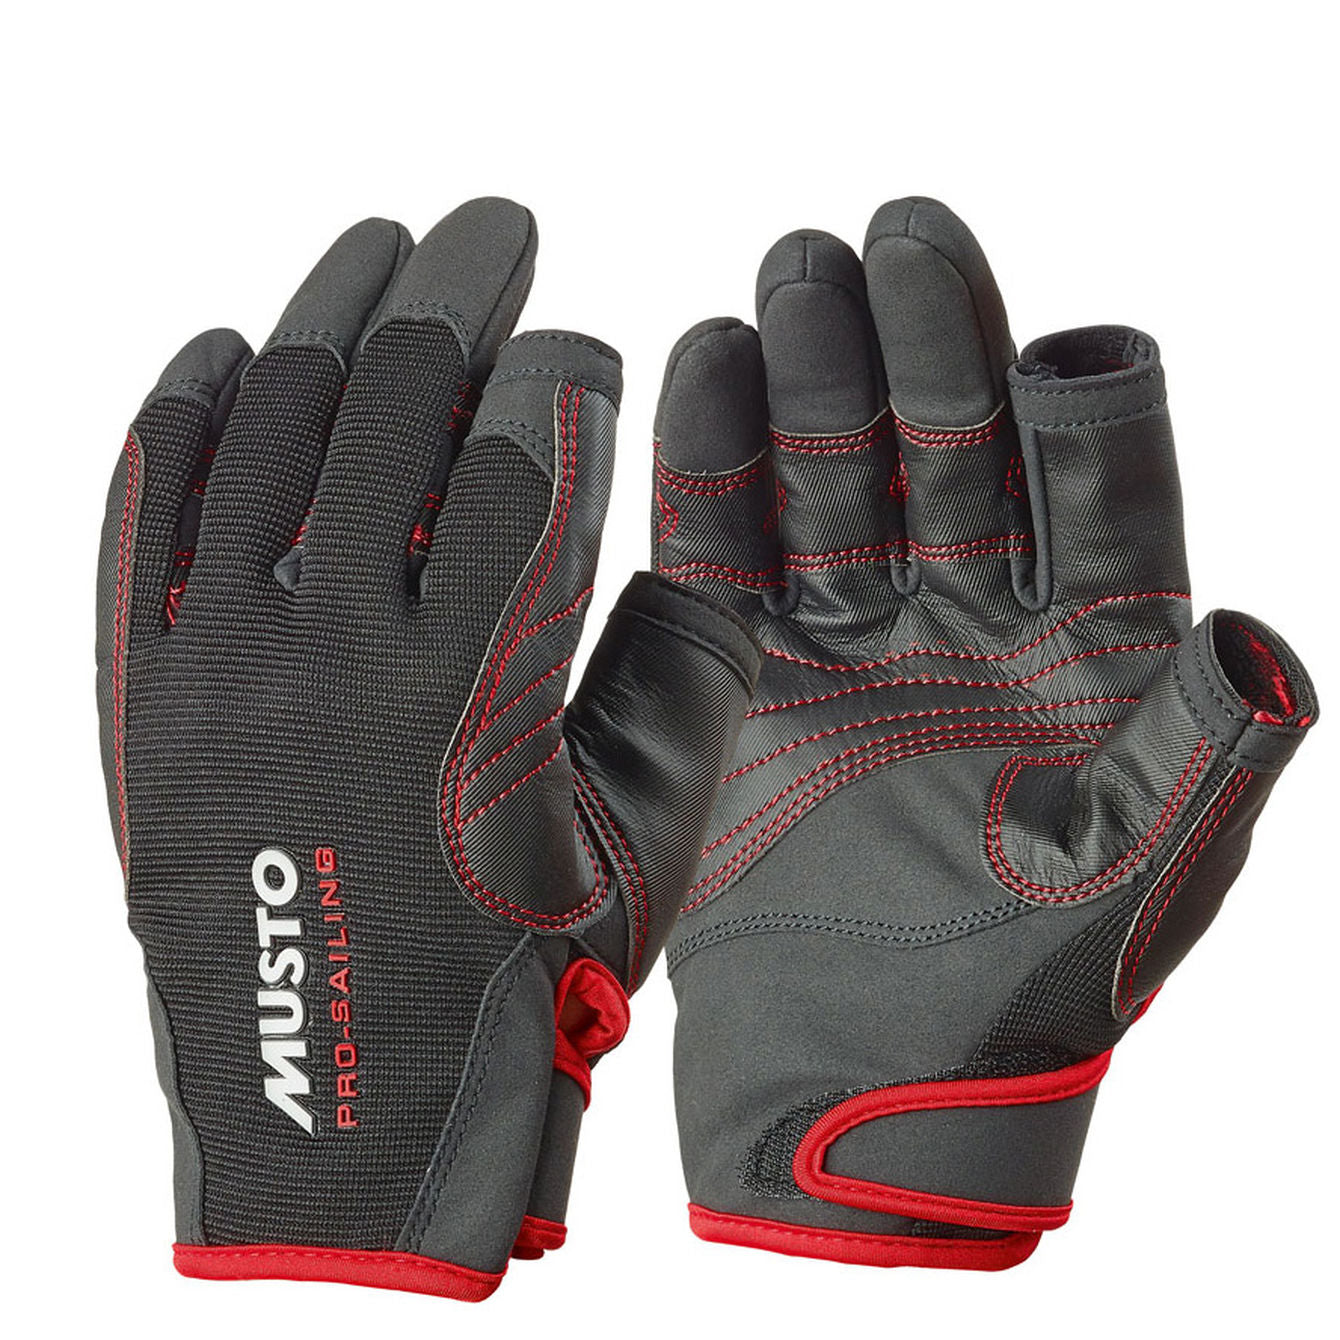 PERFORMANCE LONG FINGER GLOVE